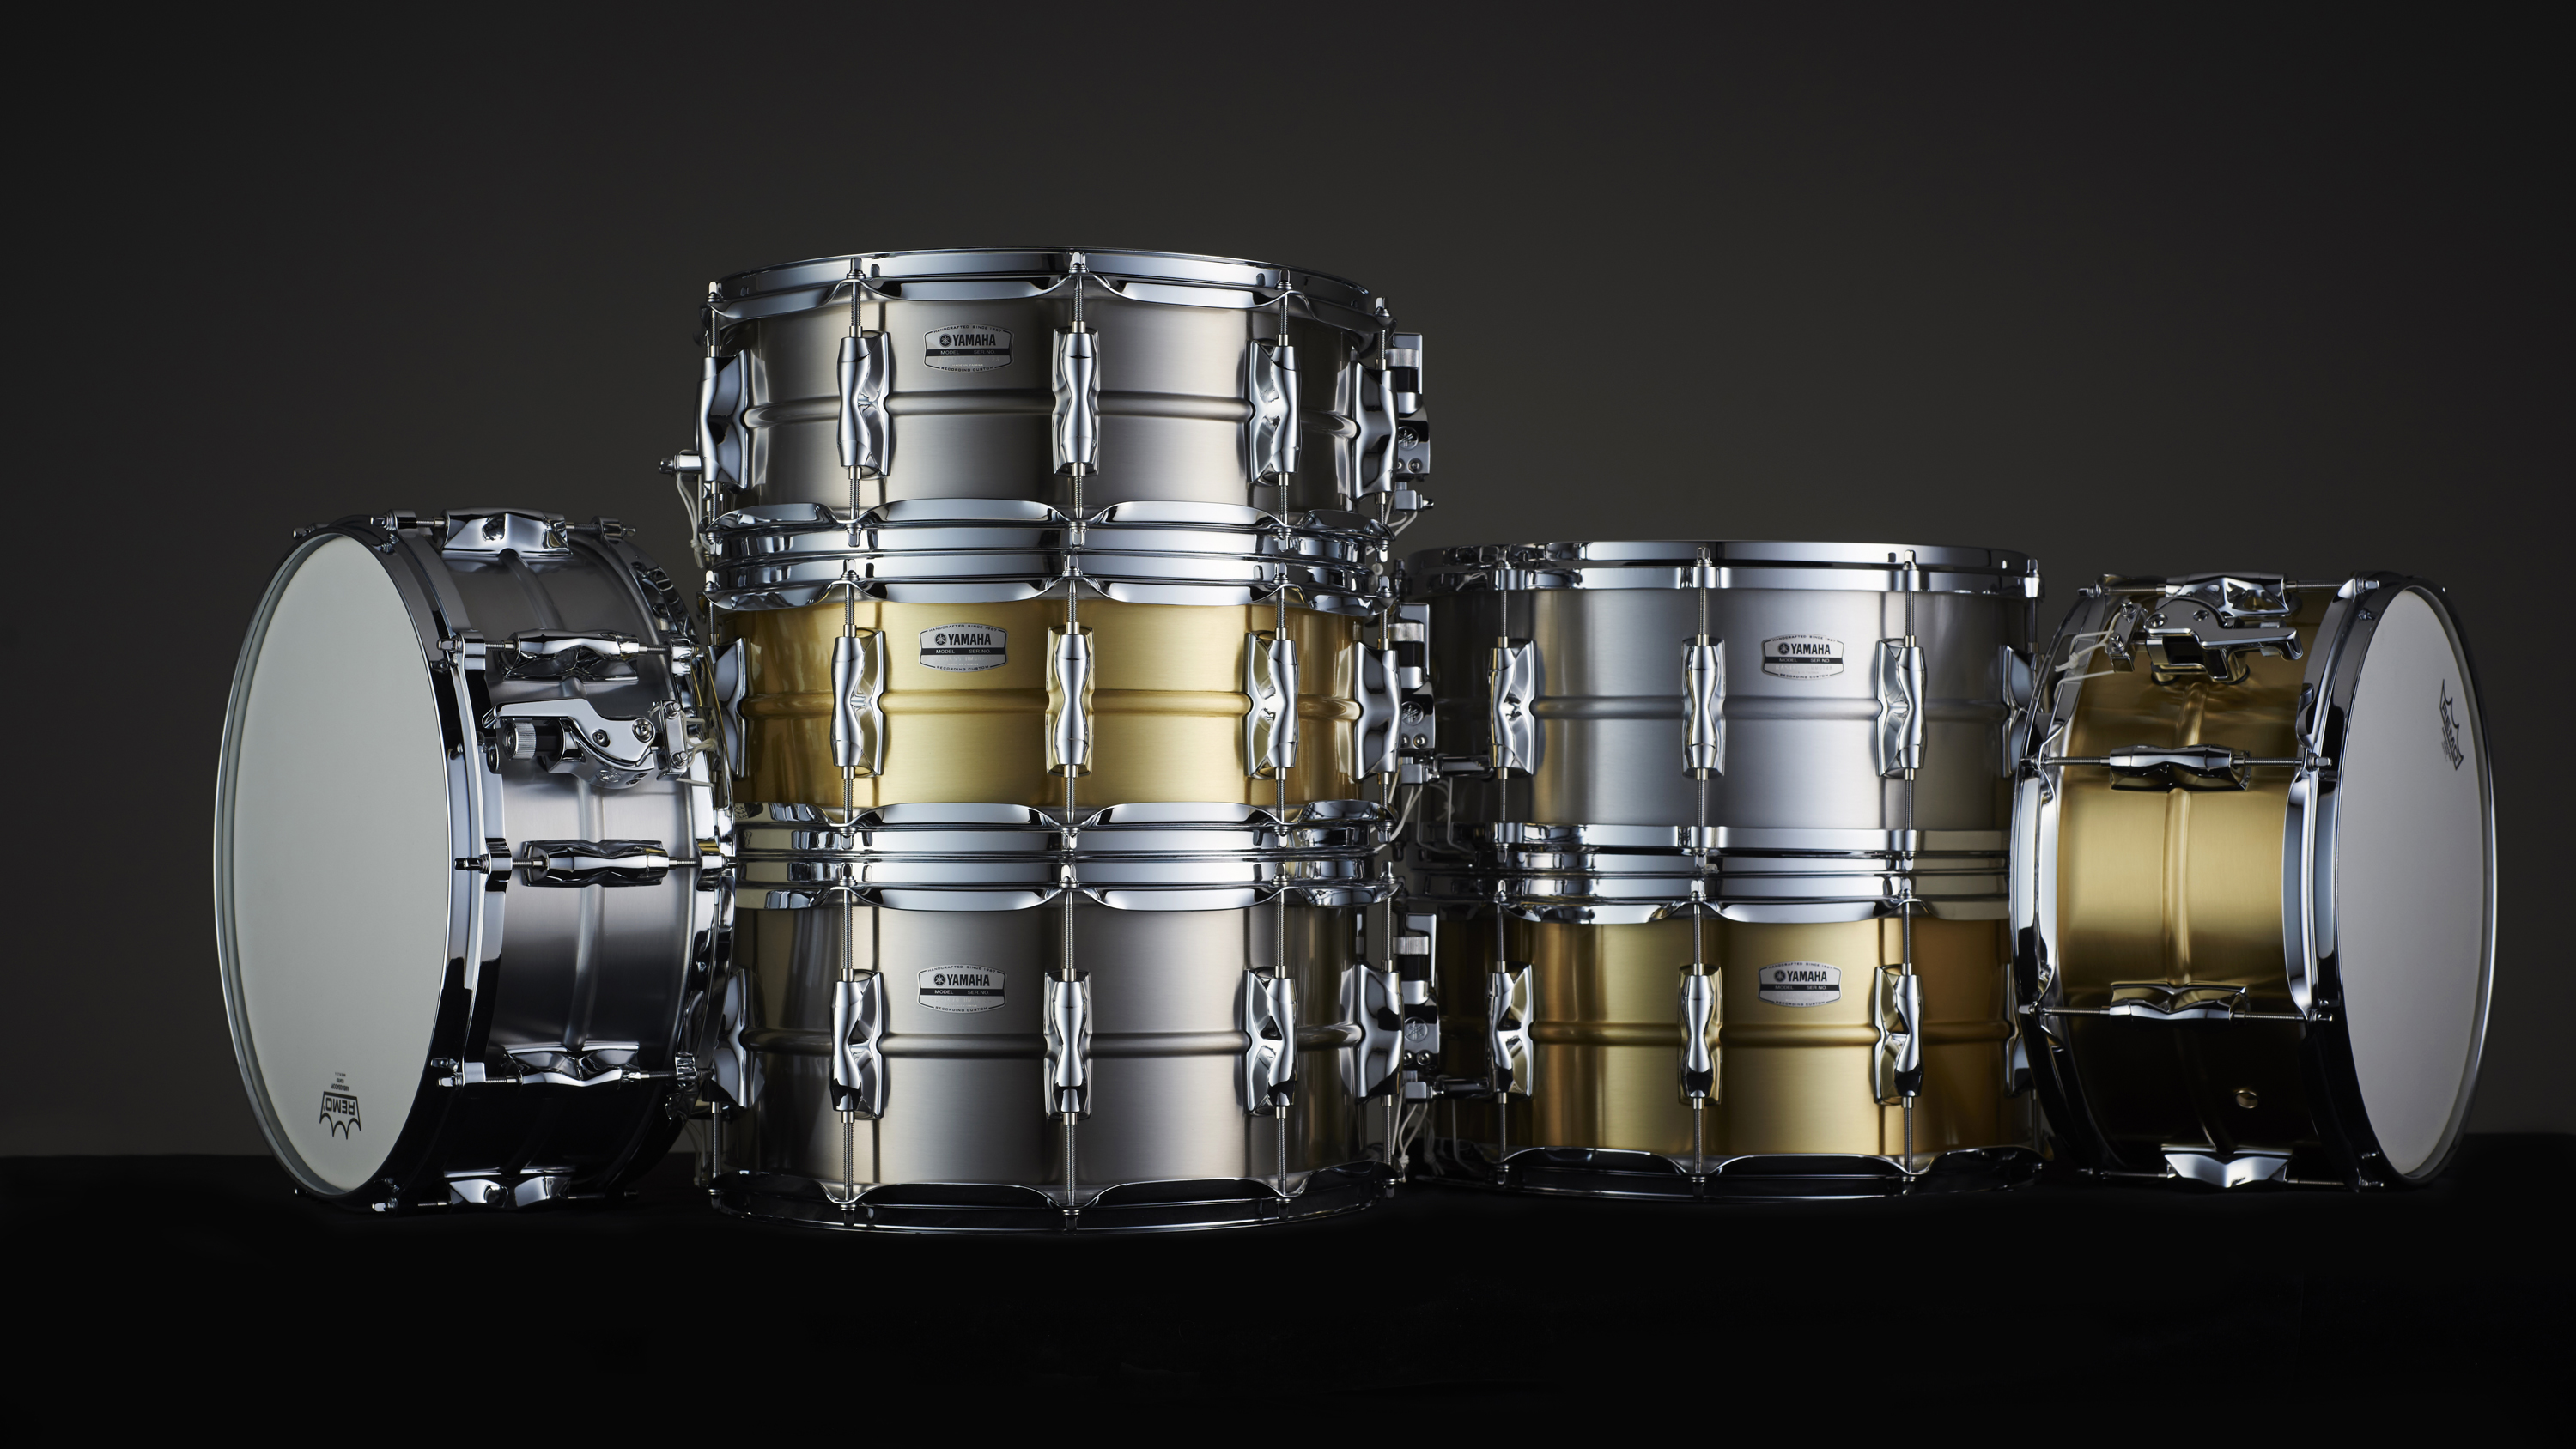 The best snare drums 2019: our pick of the best snare drums for